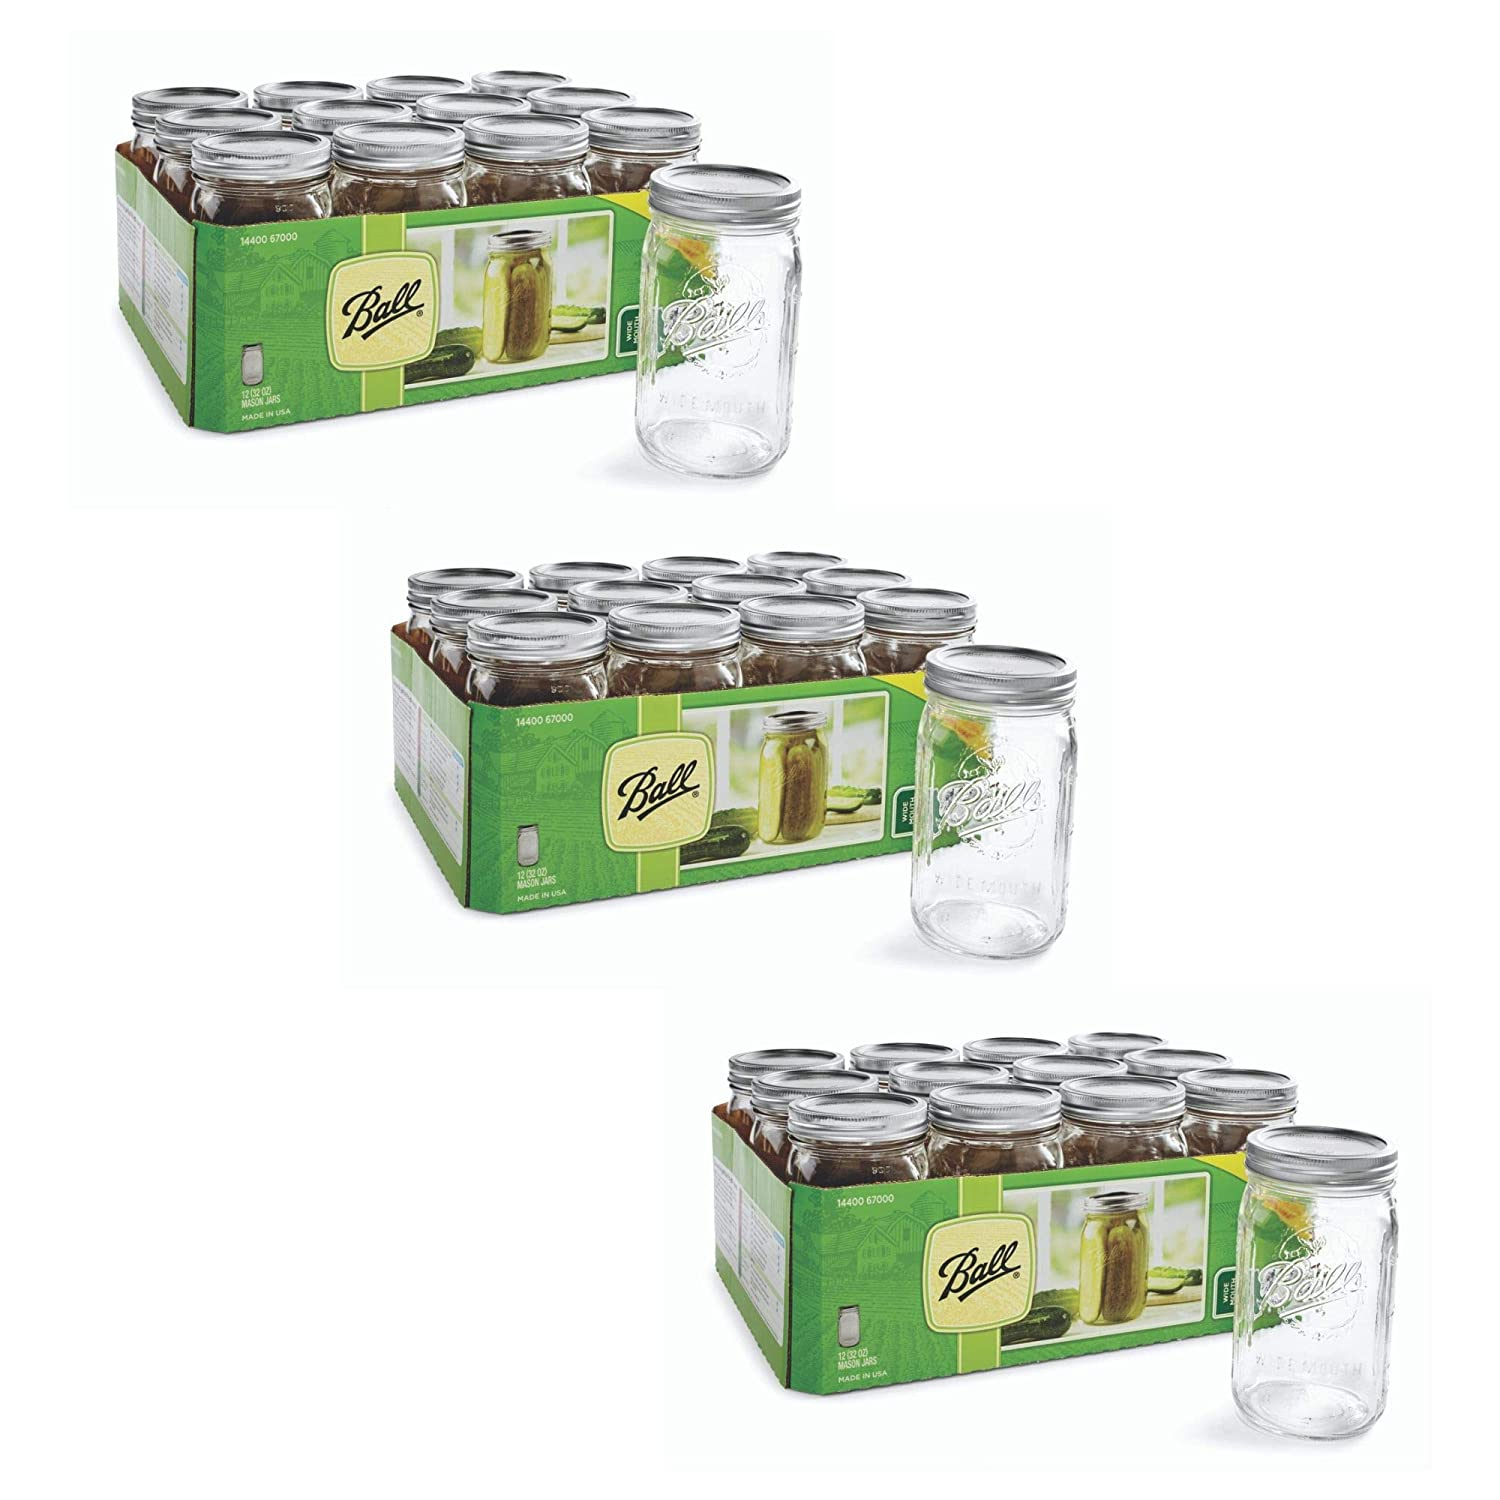 Set of 12 Jars. Ball Mason 32 oz Wide Mouth Jars with Lids and Bands